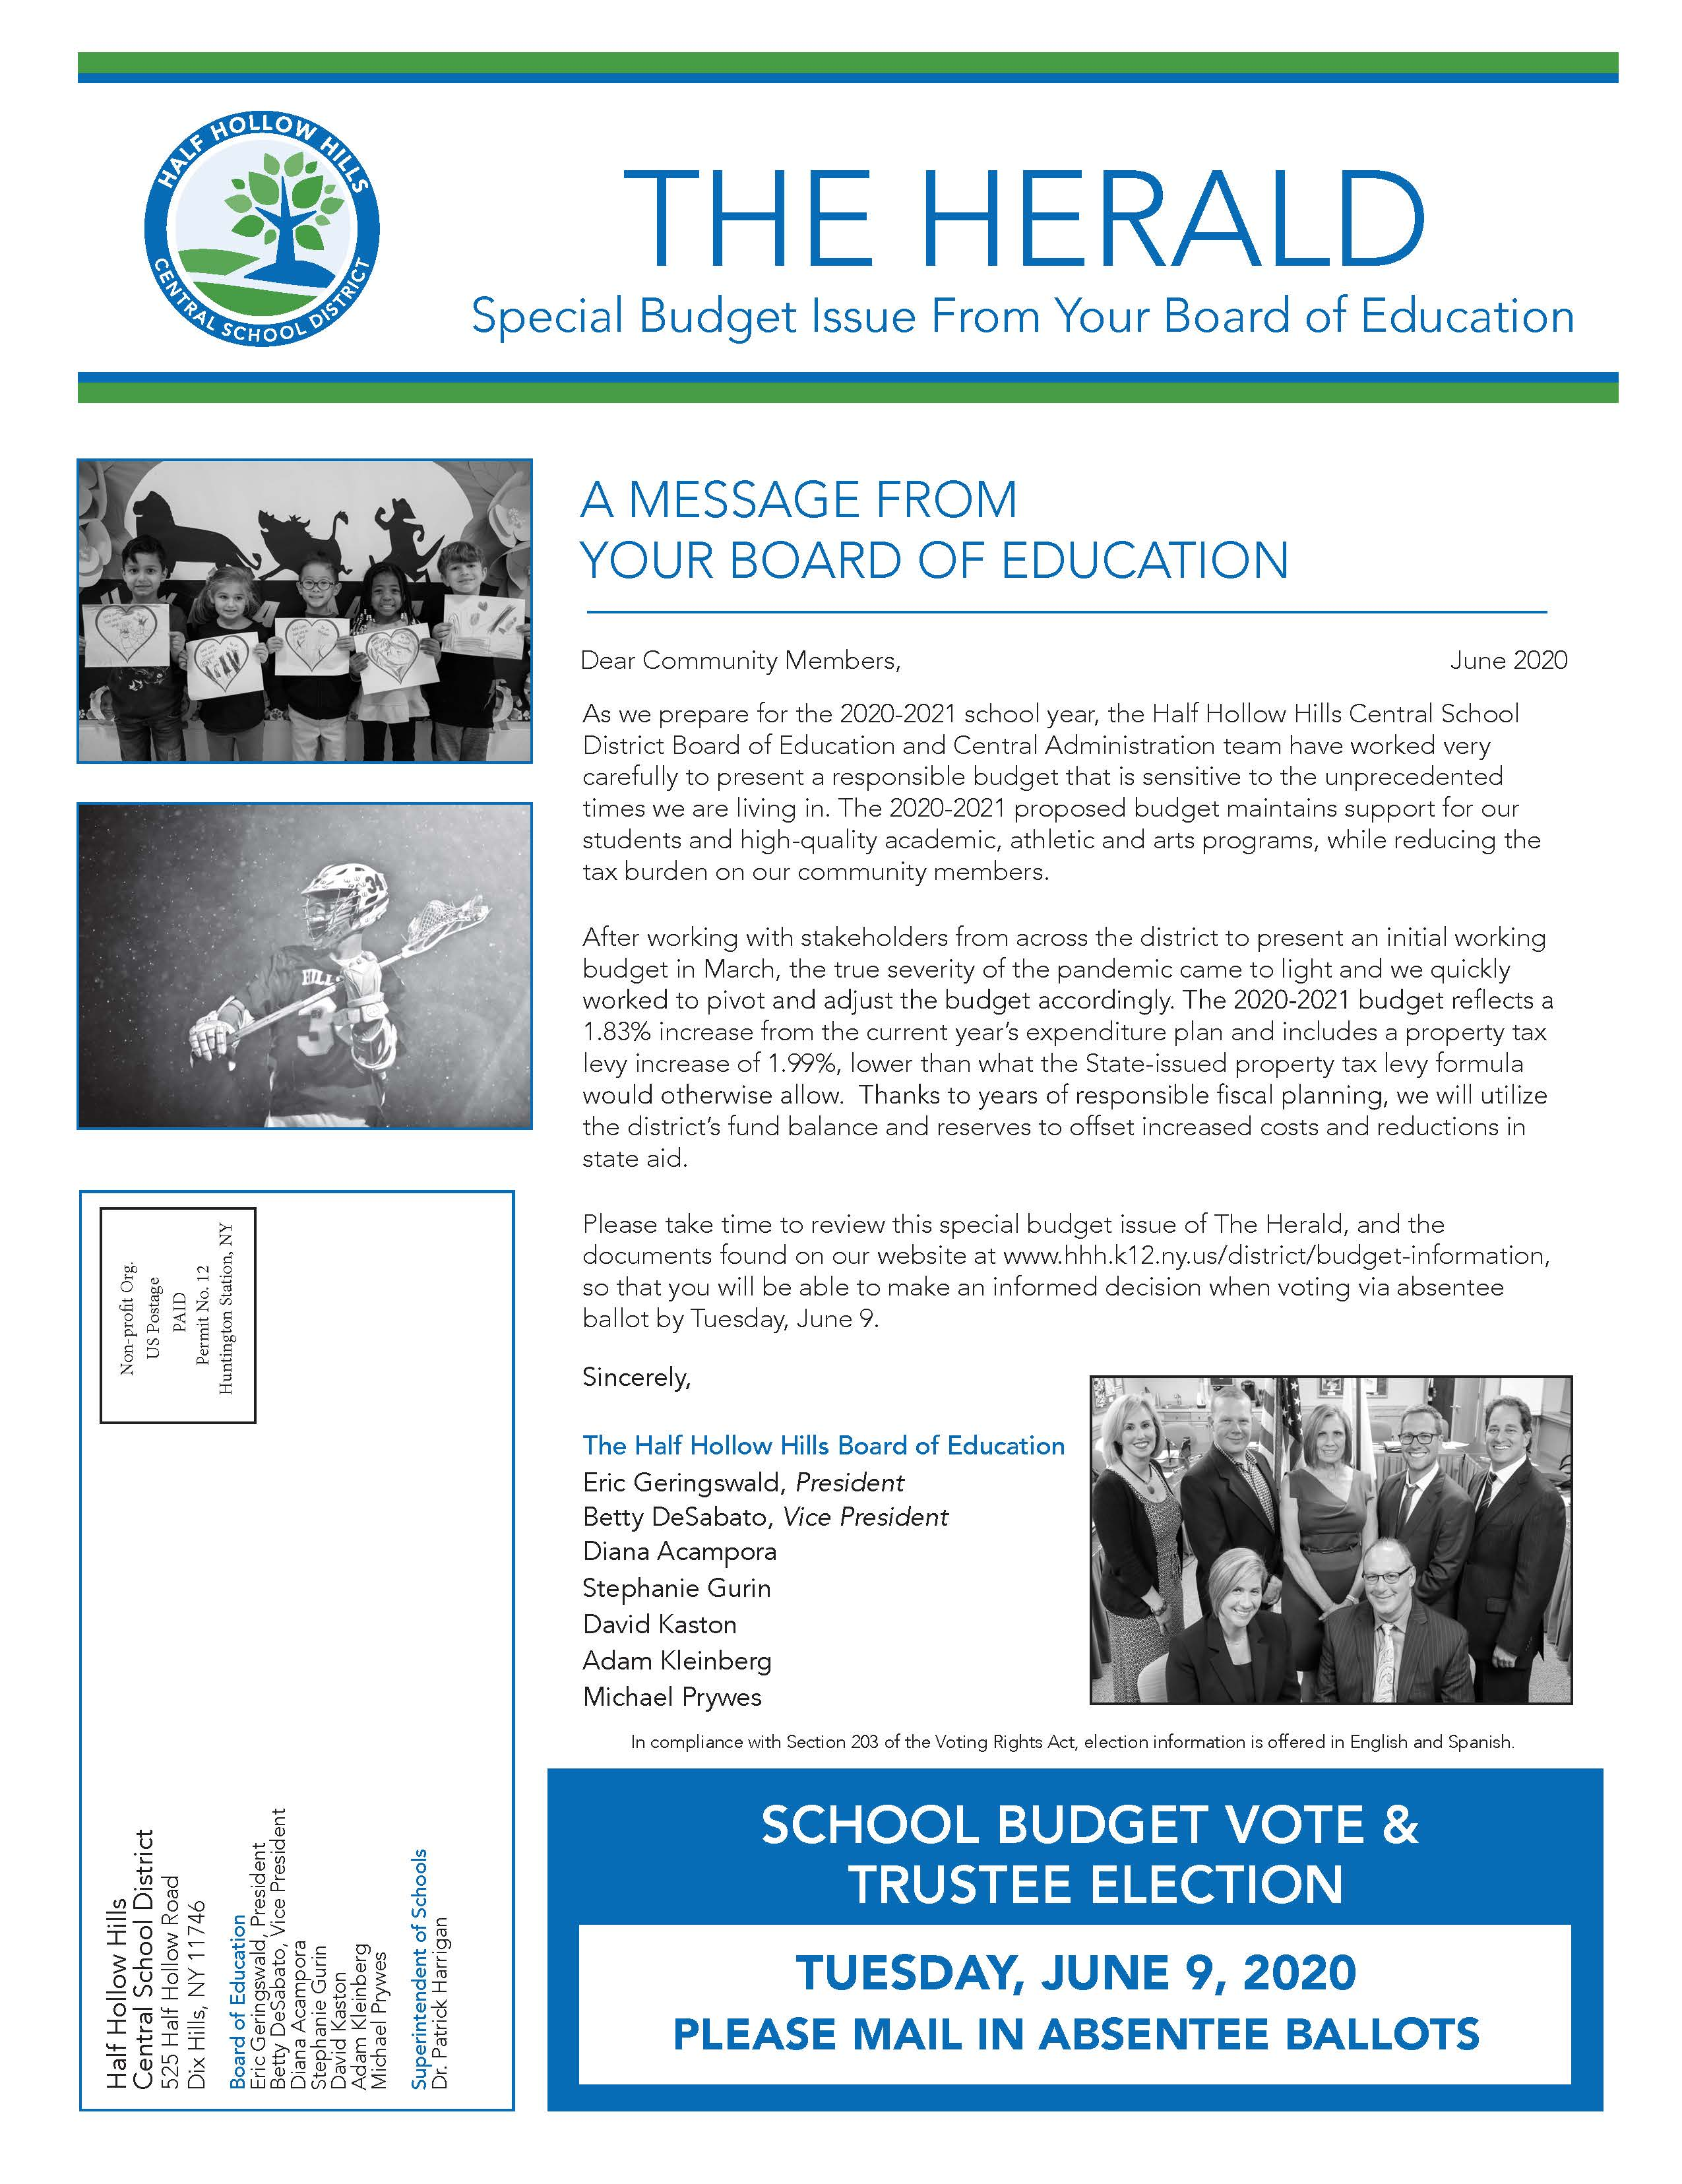 2020-2021 School Budget Vote Information